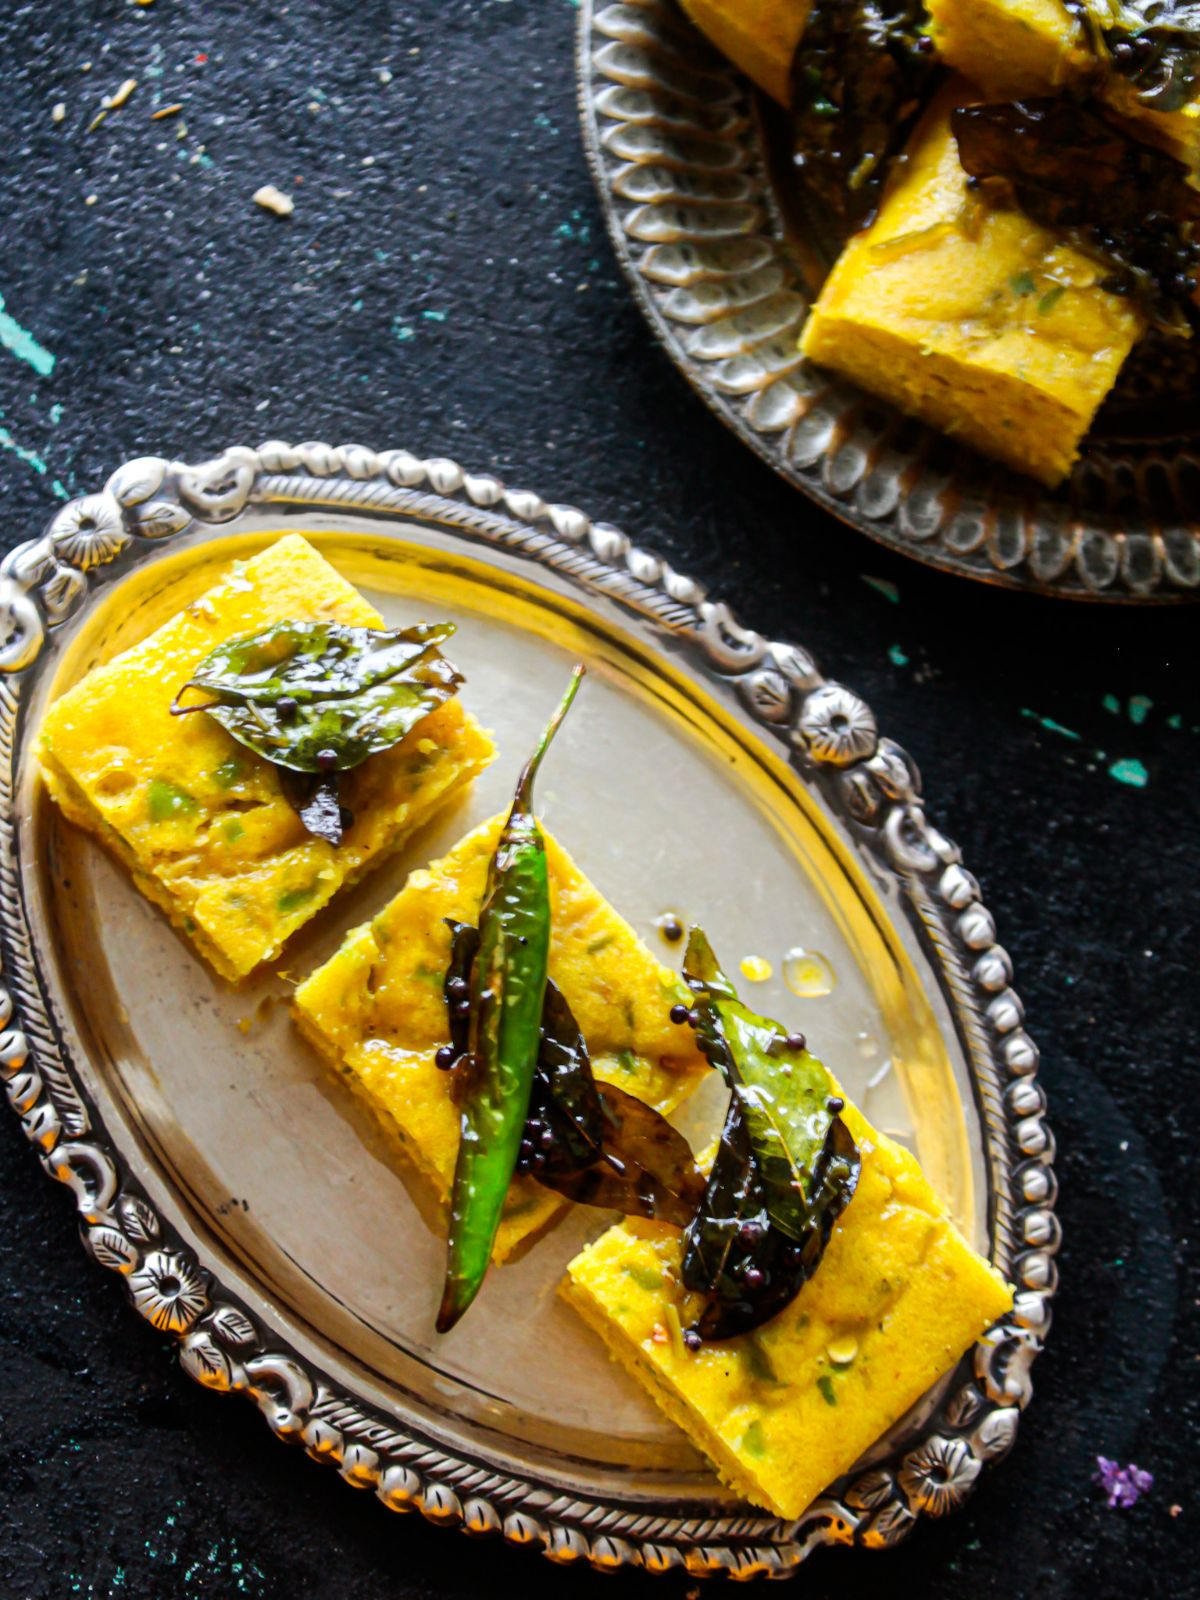 Three slices dhokla on silver platter topped with chili